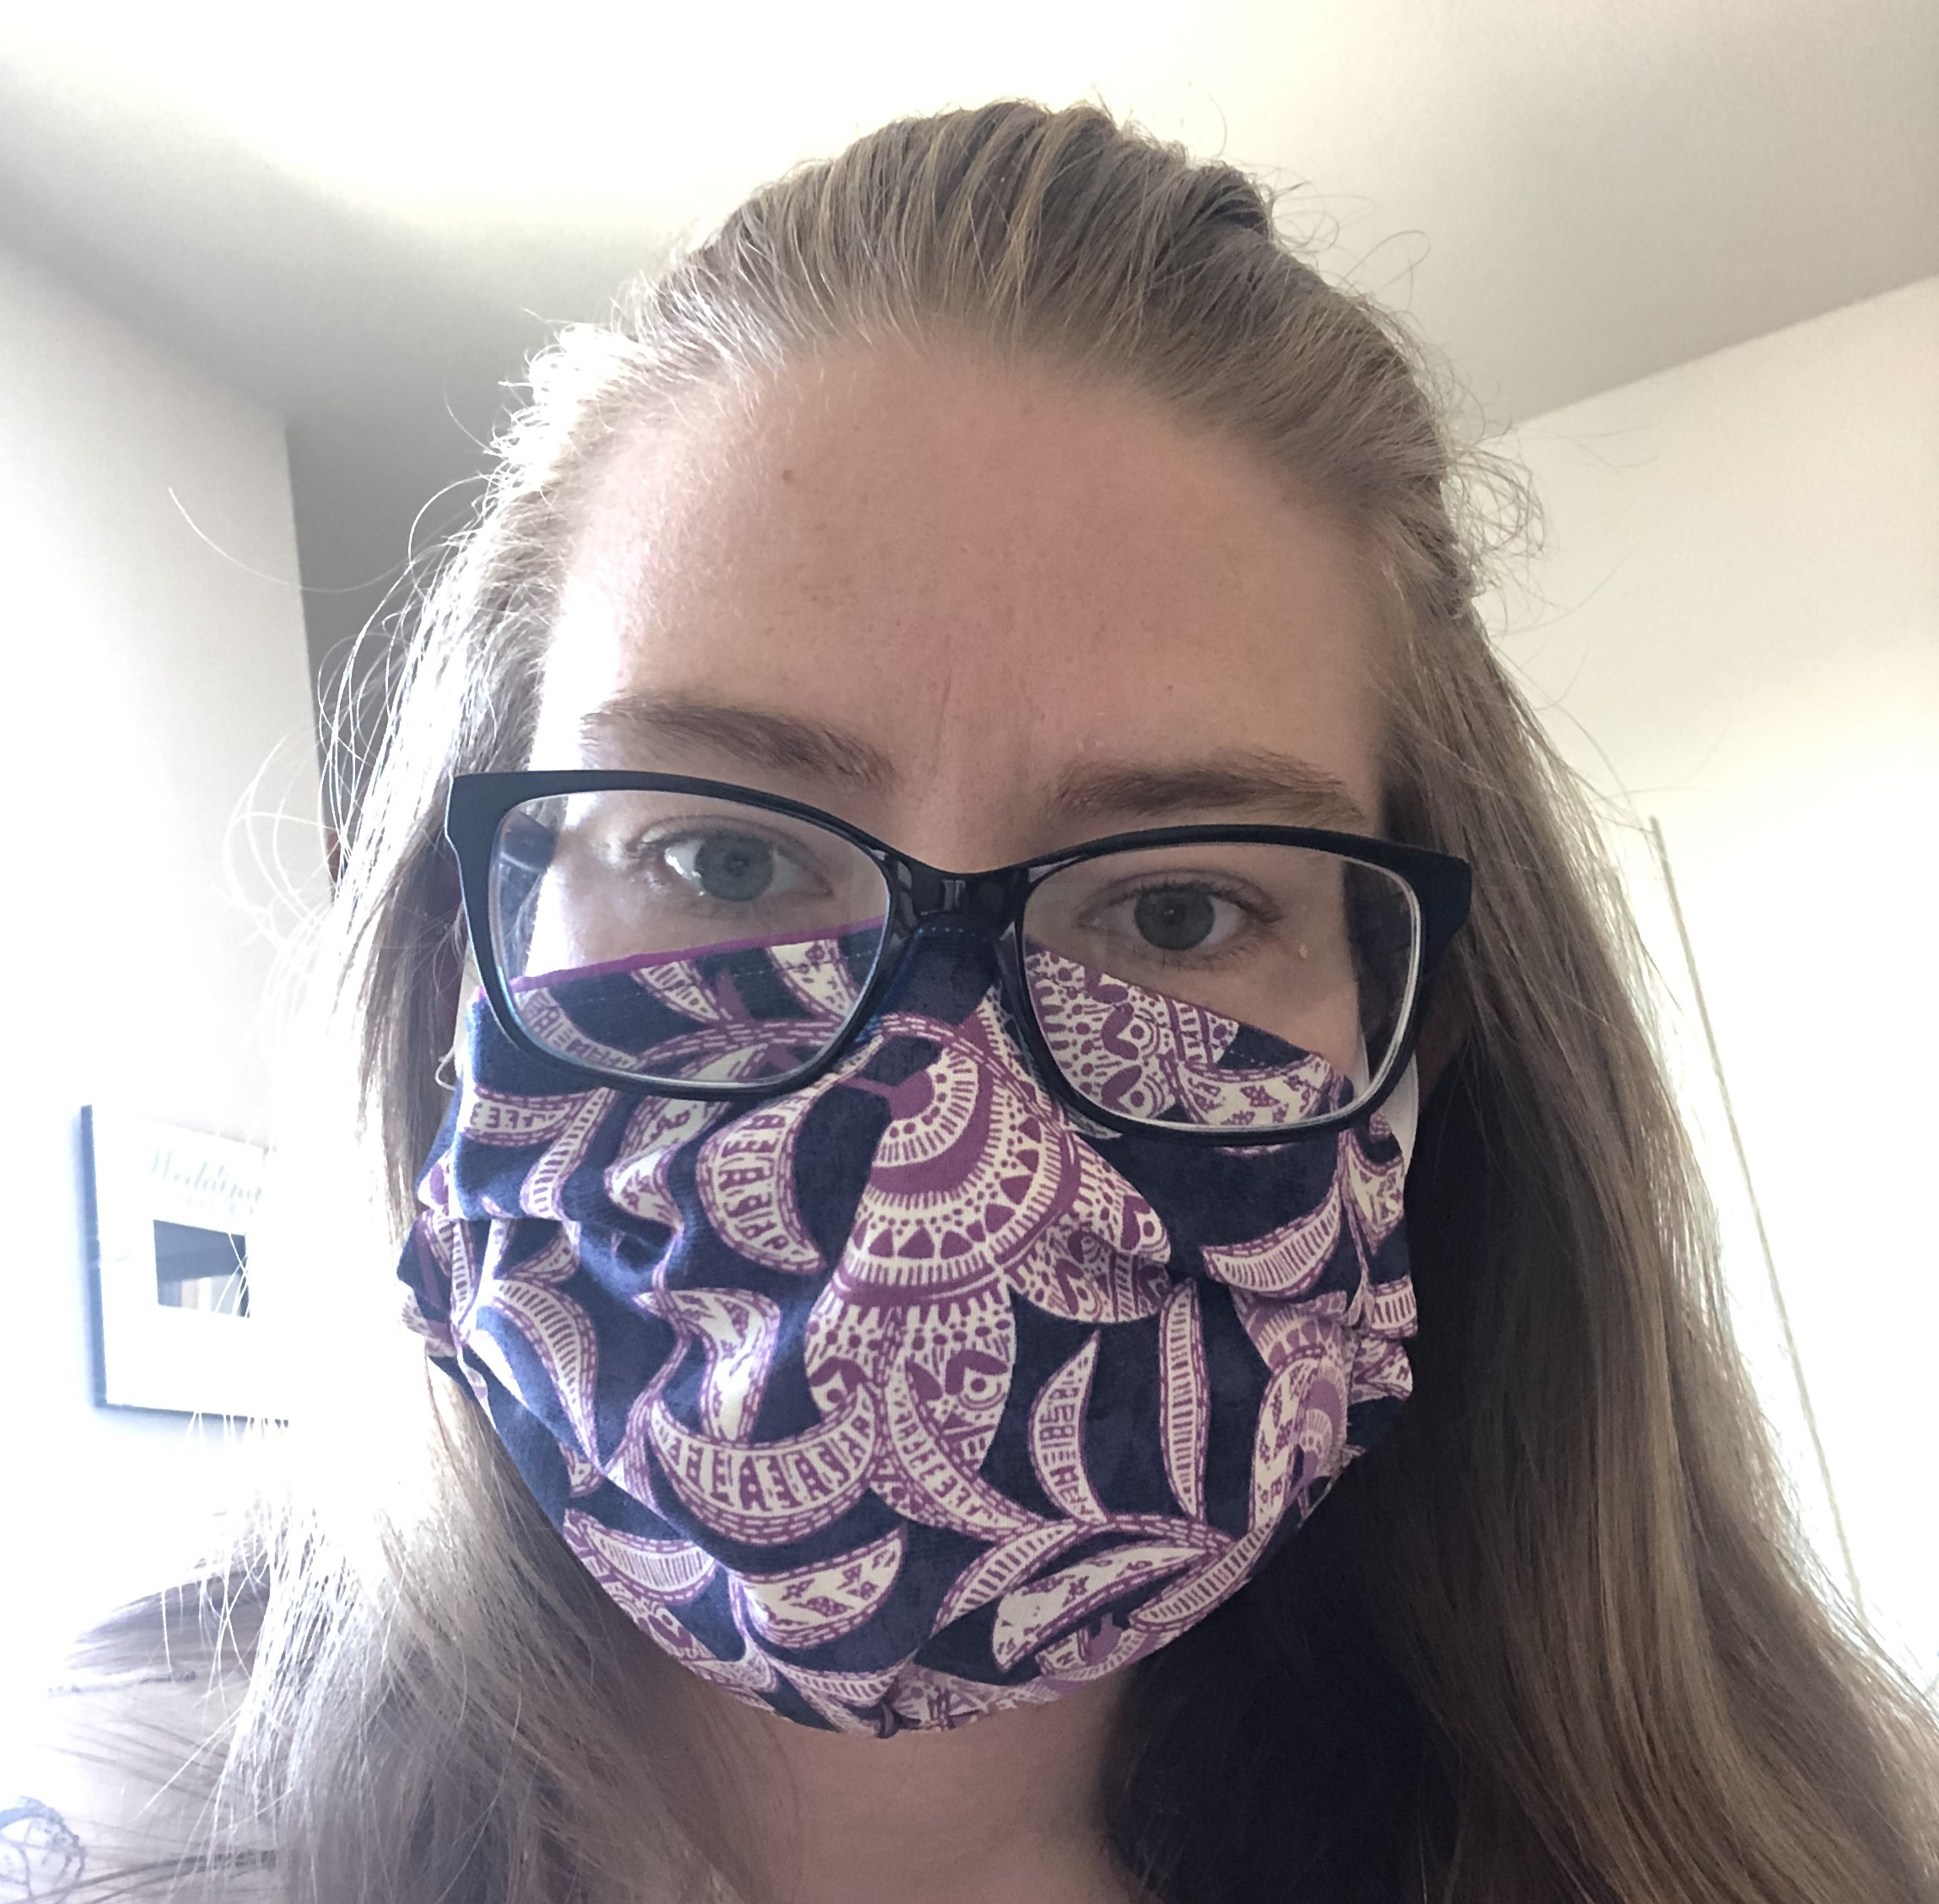 protect yourself with a mask